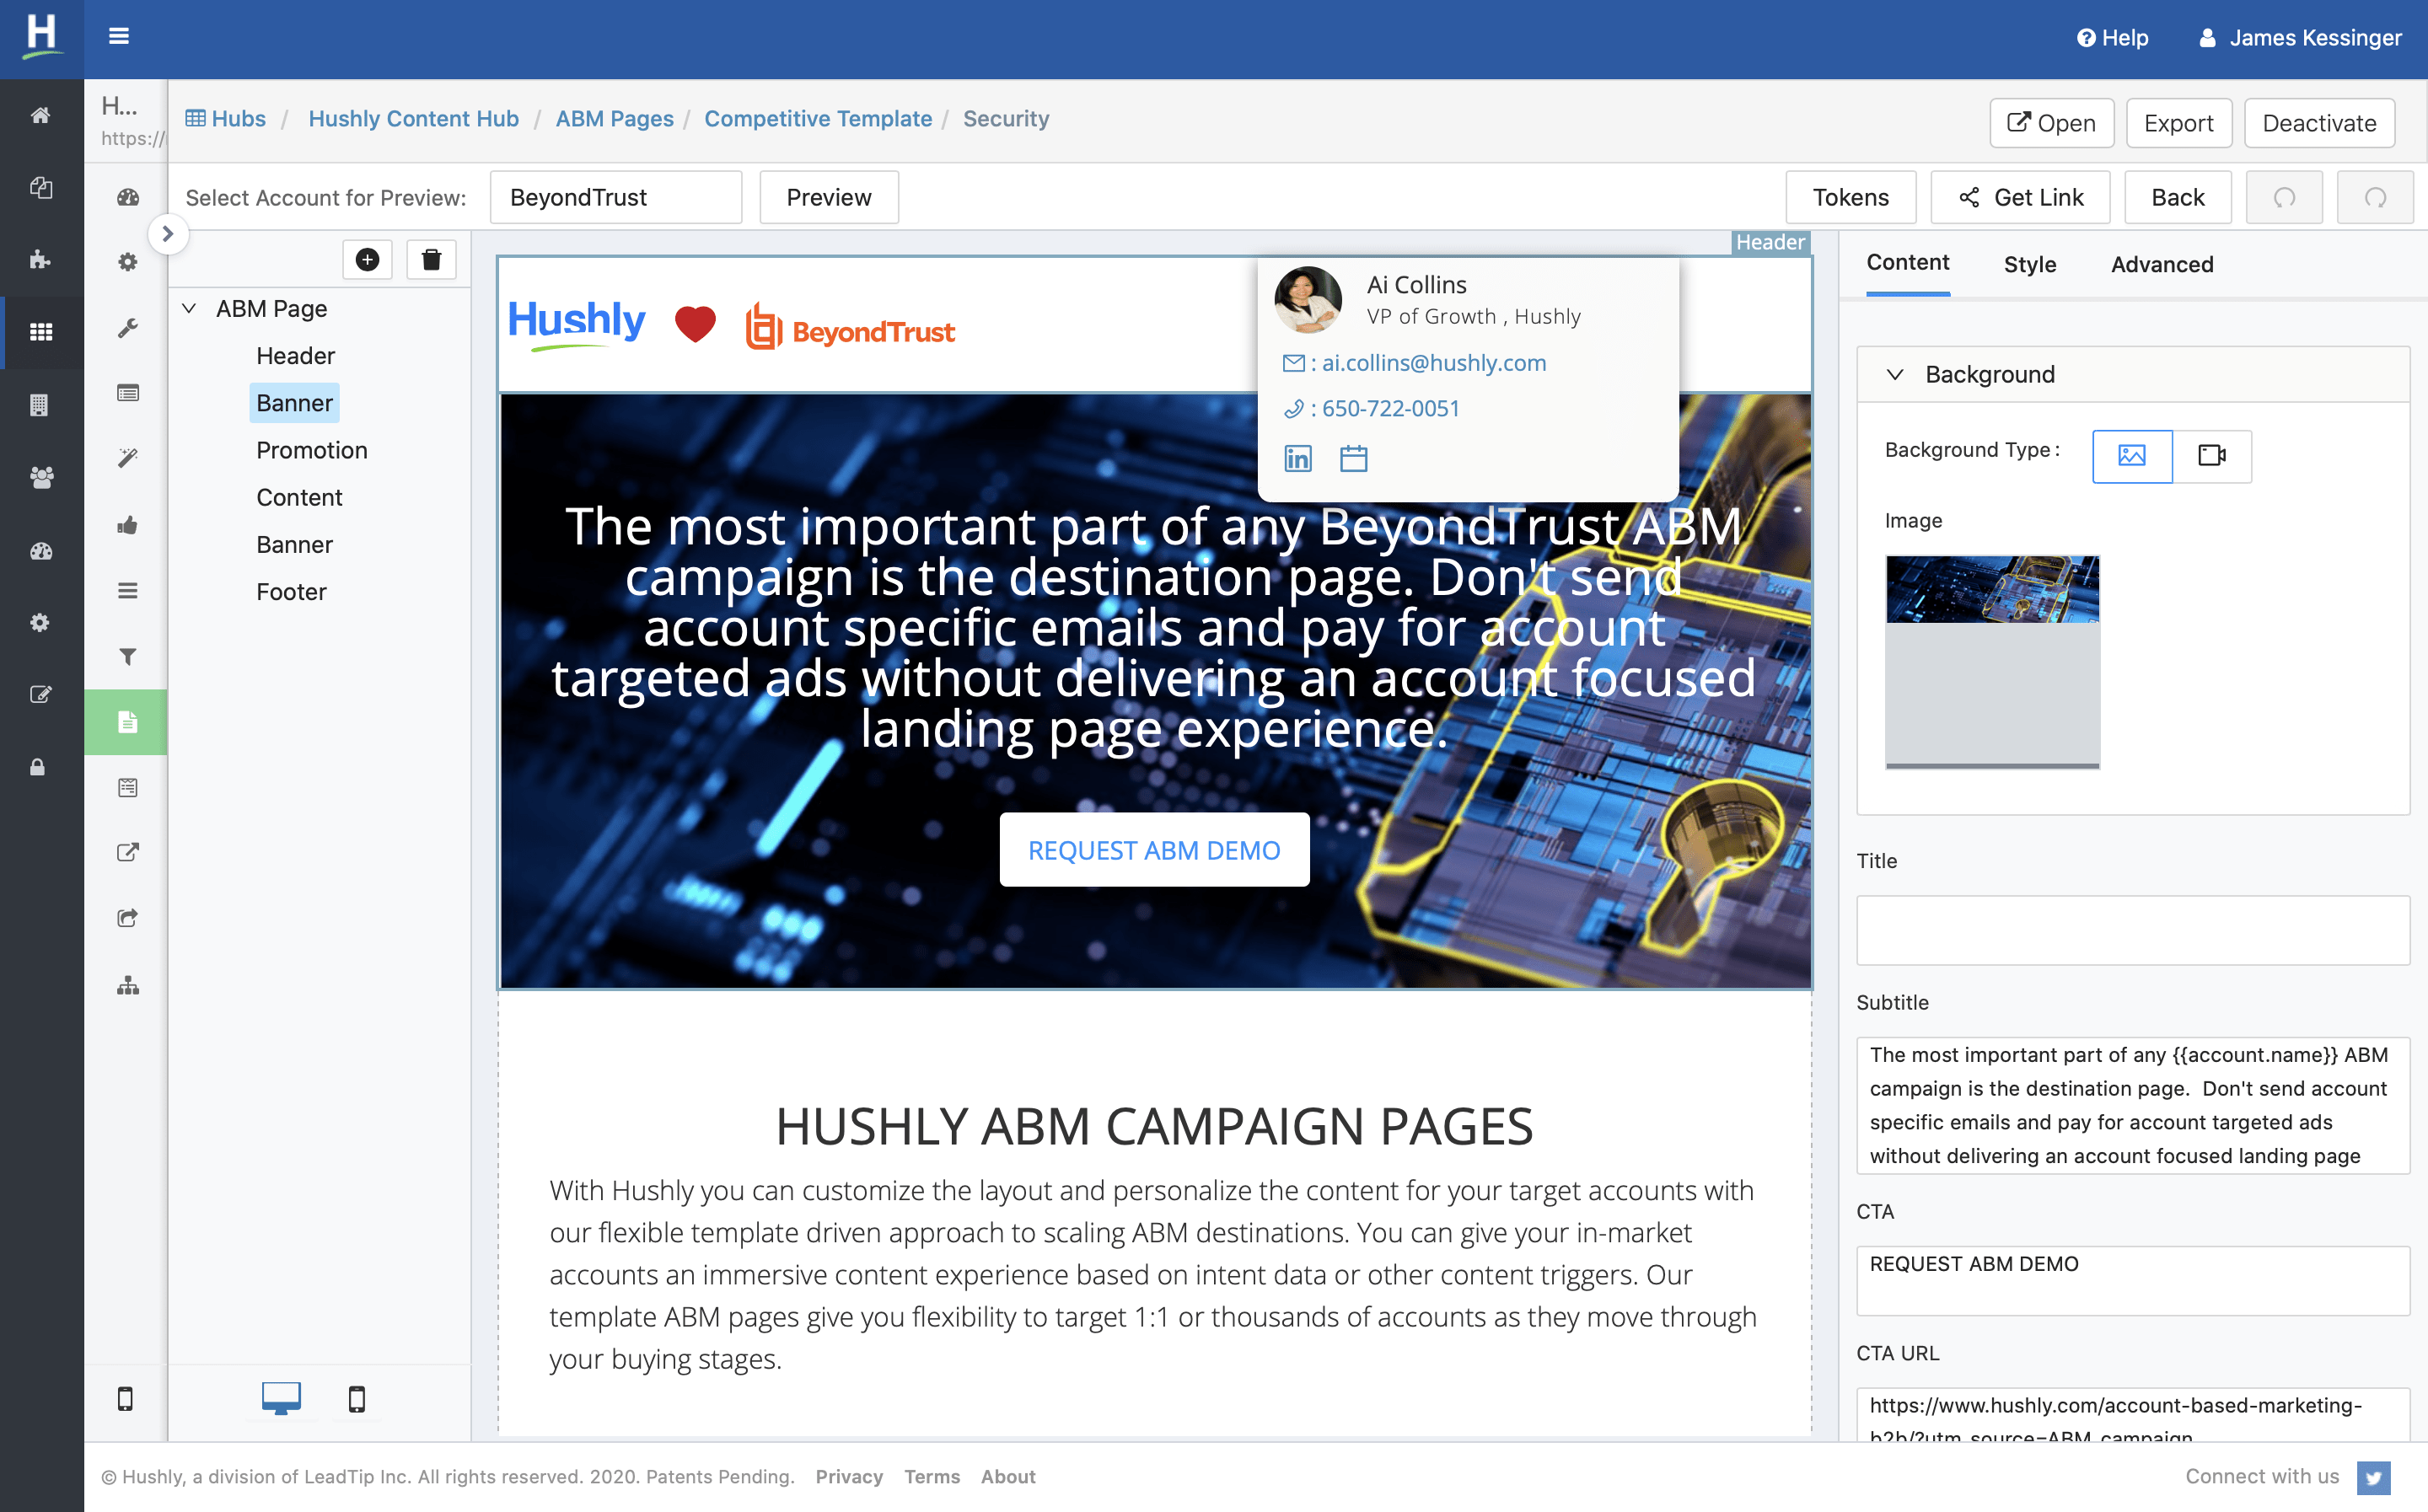 Hushly is an all-in-one content engagement, lead conversion, and lead enrichment platform powered by artificial intelligence (AI).